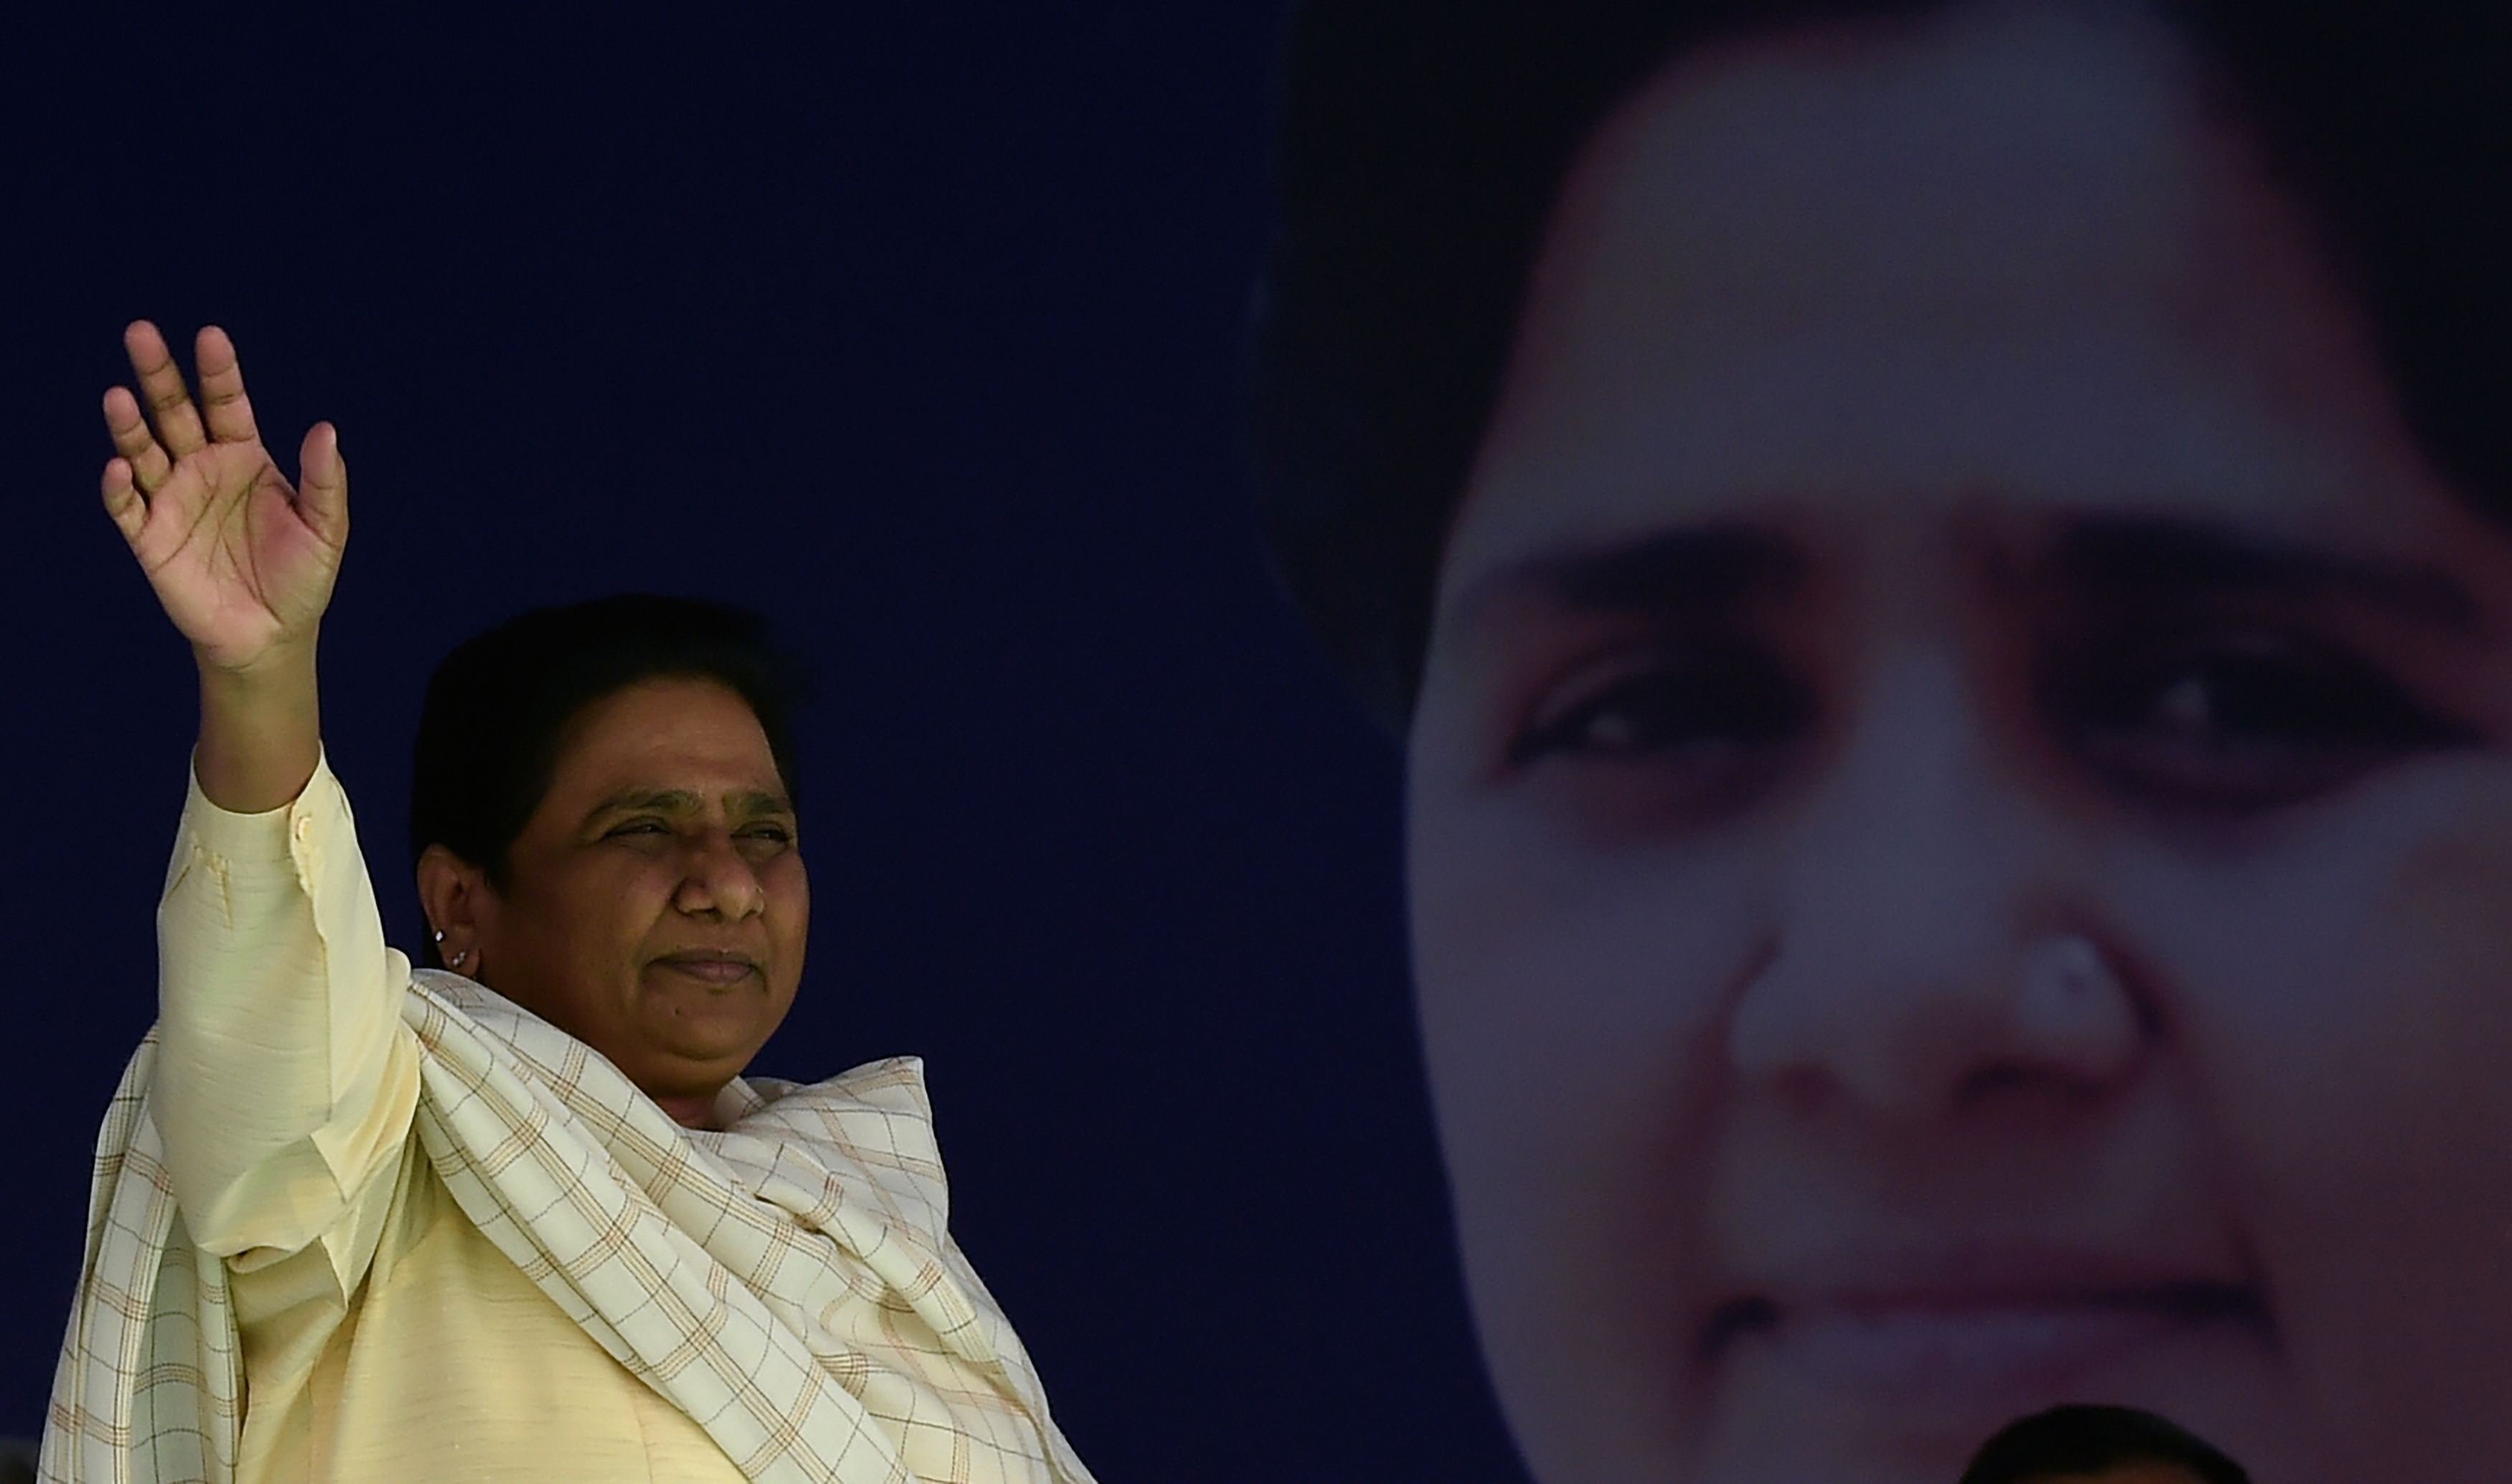 Bahujan Samaj Party leader Mayawati was banned from campaigning for 48 hours after breaking electoral rules that prohibit appealing to voters on the basis of religion.